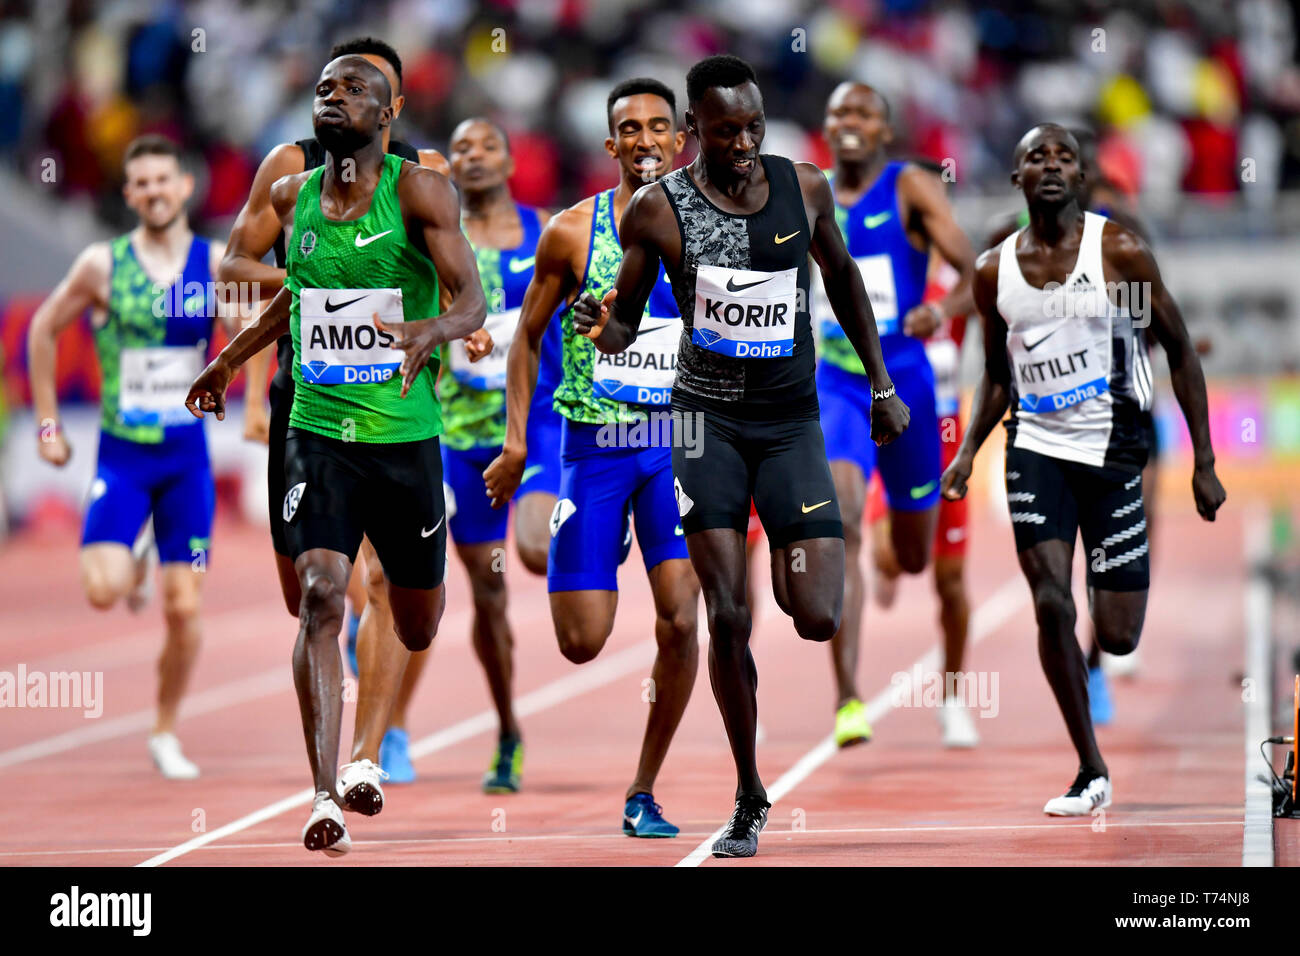 Doha, Qatar. 3rd May, 2019. Nijel Amos (L, front) of Botswana competes during the men's 800m final at 2019 IAAF Diamond League at Khalifa International Stadium in Doha, Qatar, May 3, 2019. Nijel Amos won the gold medal with 1 minute and 44.29 seconds. Credit: Nikku/Xinhua/Alamy Live News - Stock Image